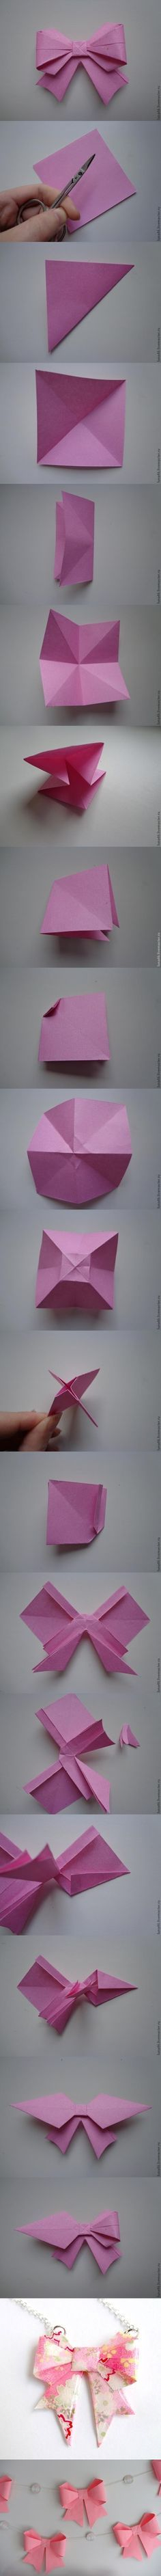 #diy #crafts #paperbow DIY Origami-Paper-Bow 3 Mehr